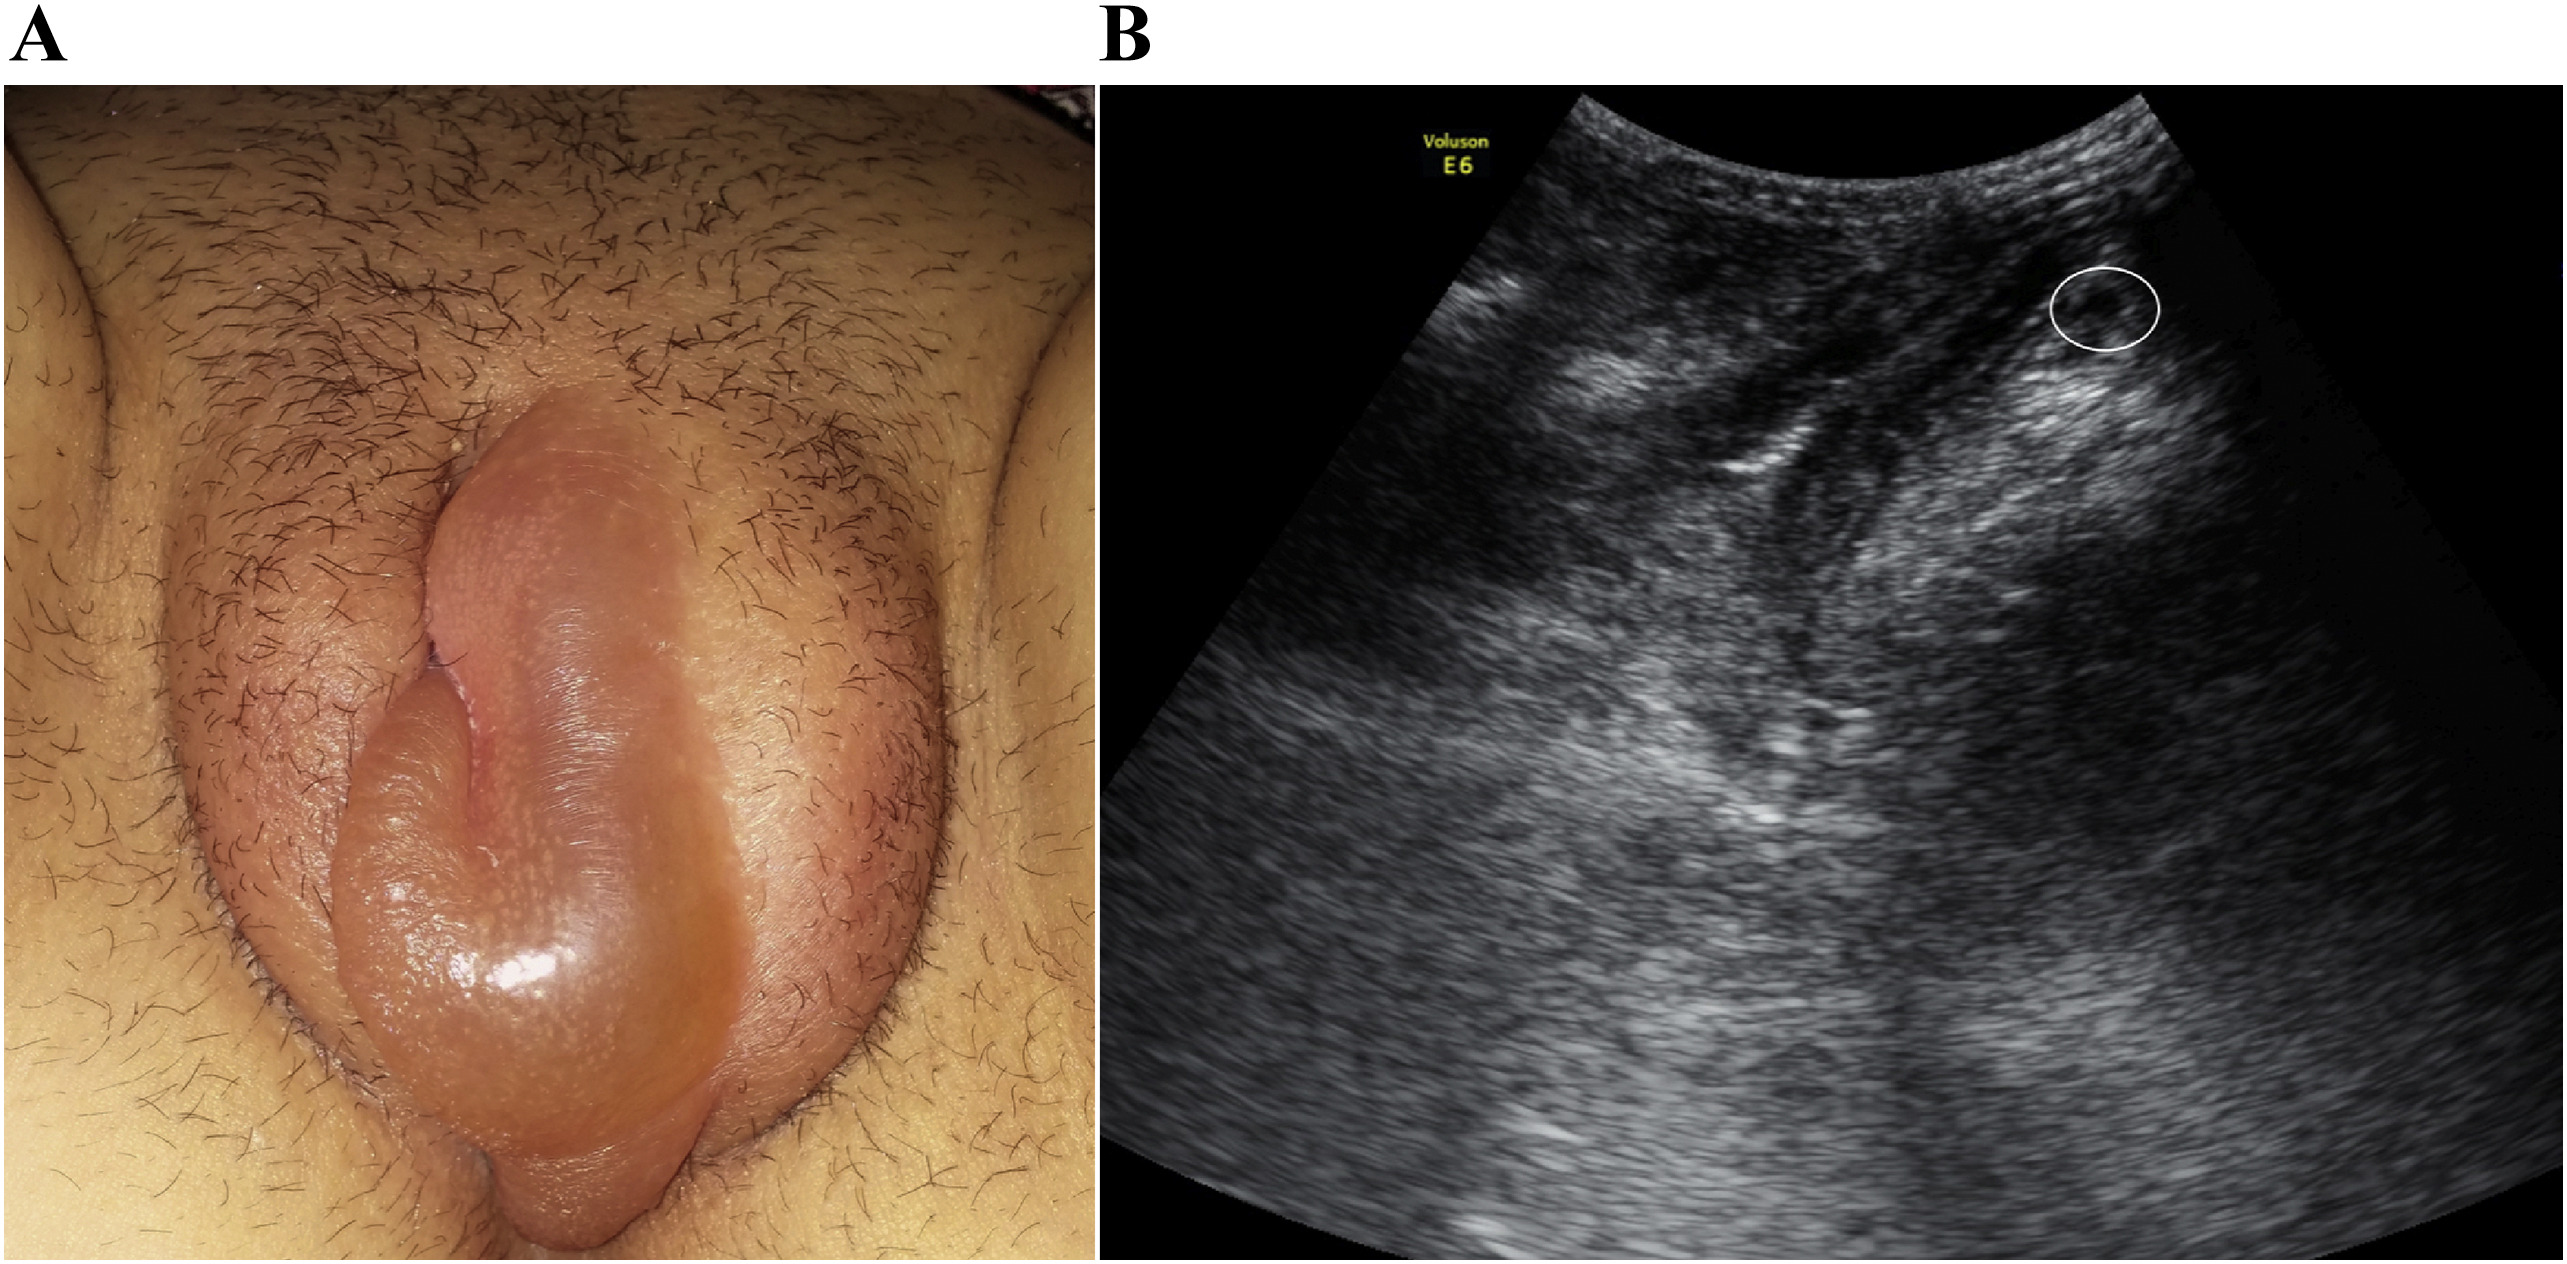 swollen labia majora: an unusual presentation of occult inguinal